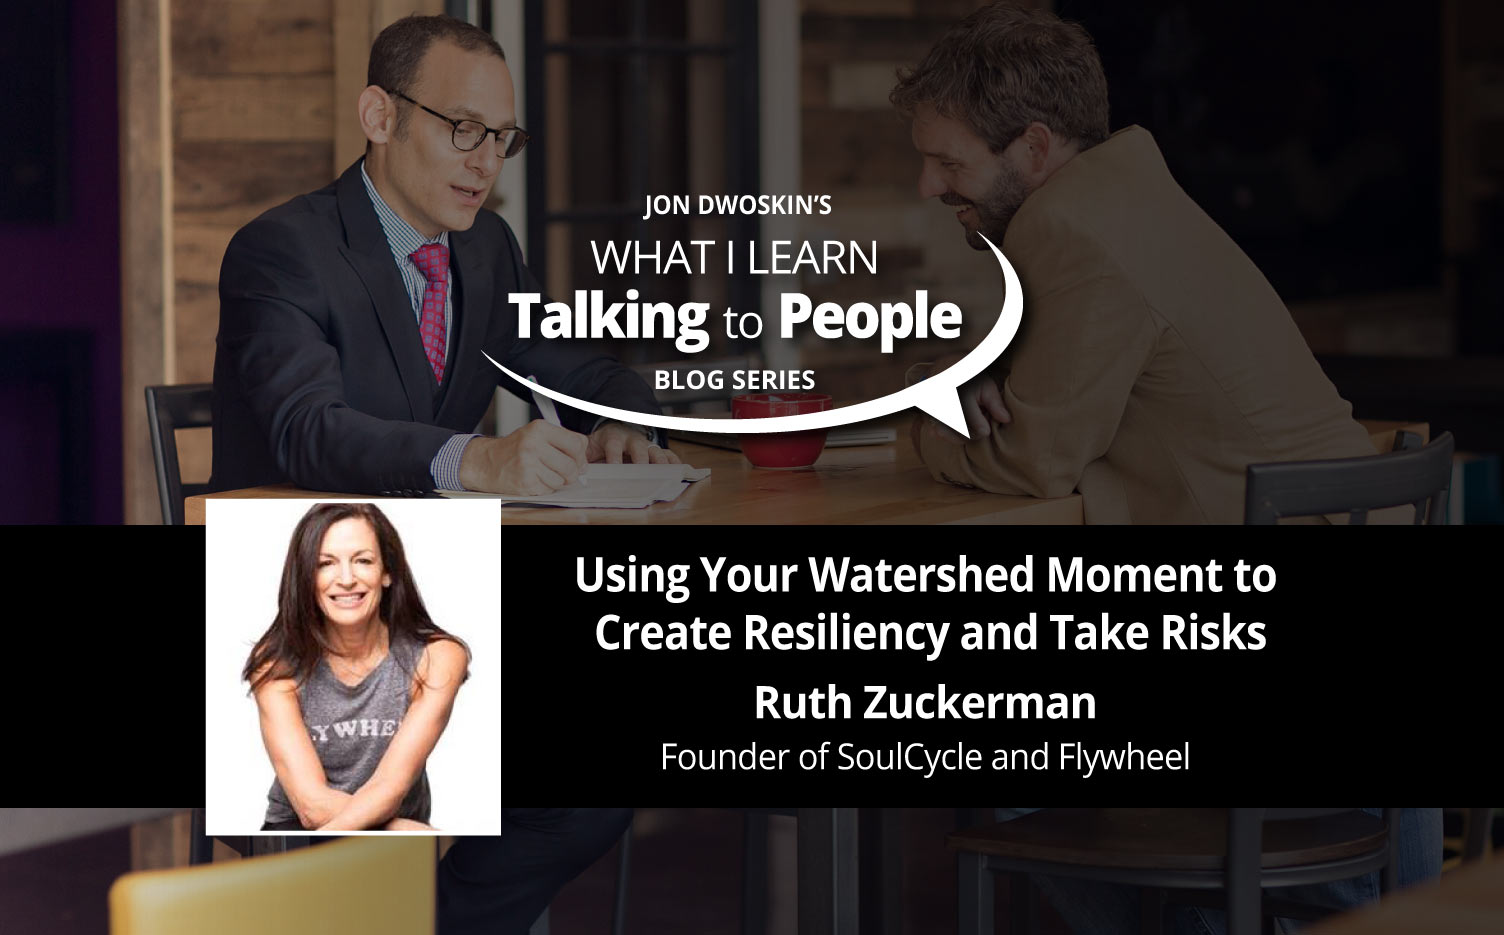 Jon Dwoskin's What I Learn Talking to People Blog: Using Your Watershed Moment to Create Resiliency and Take Risks